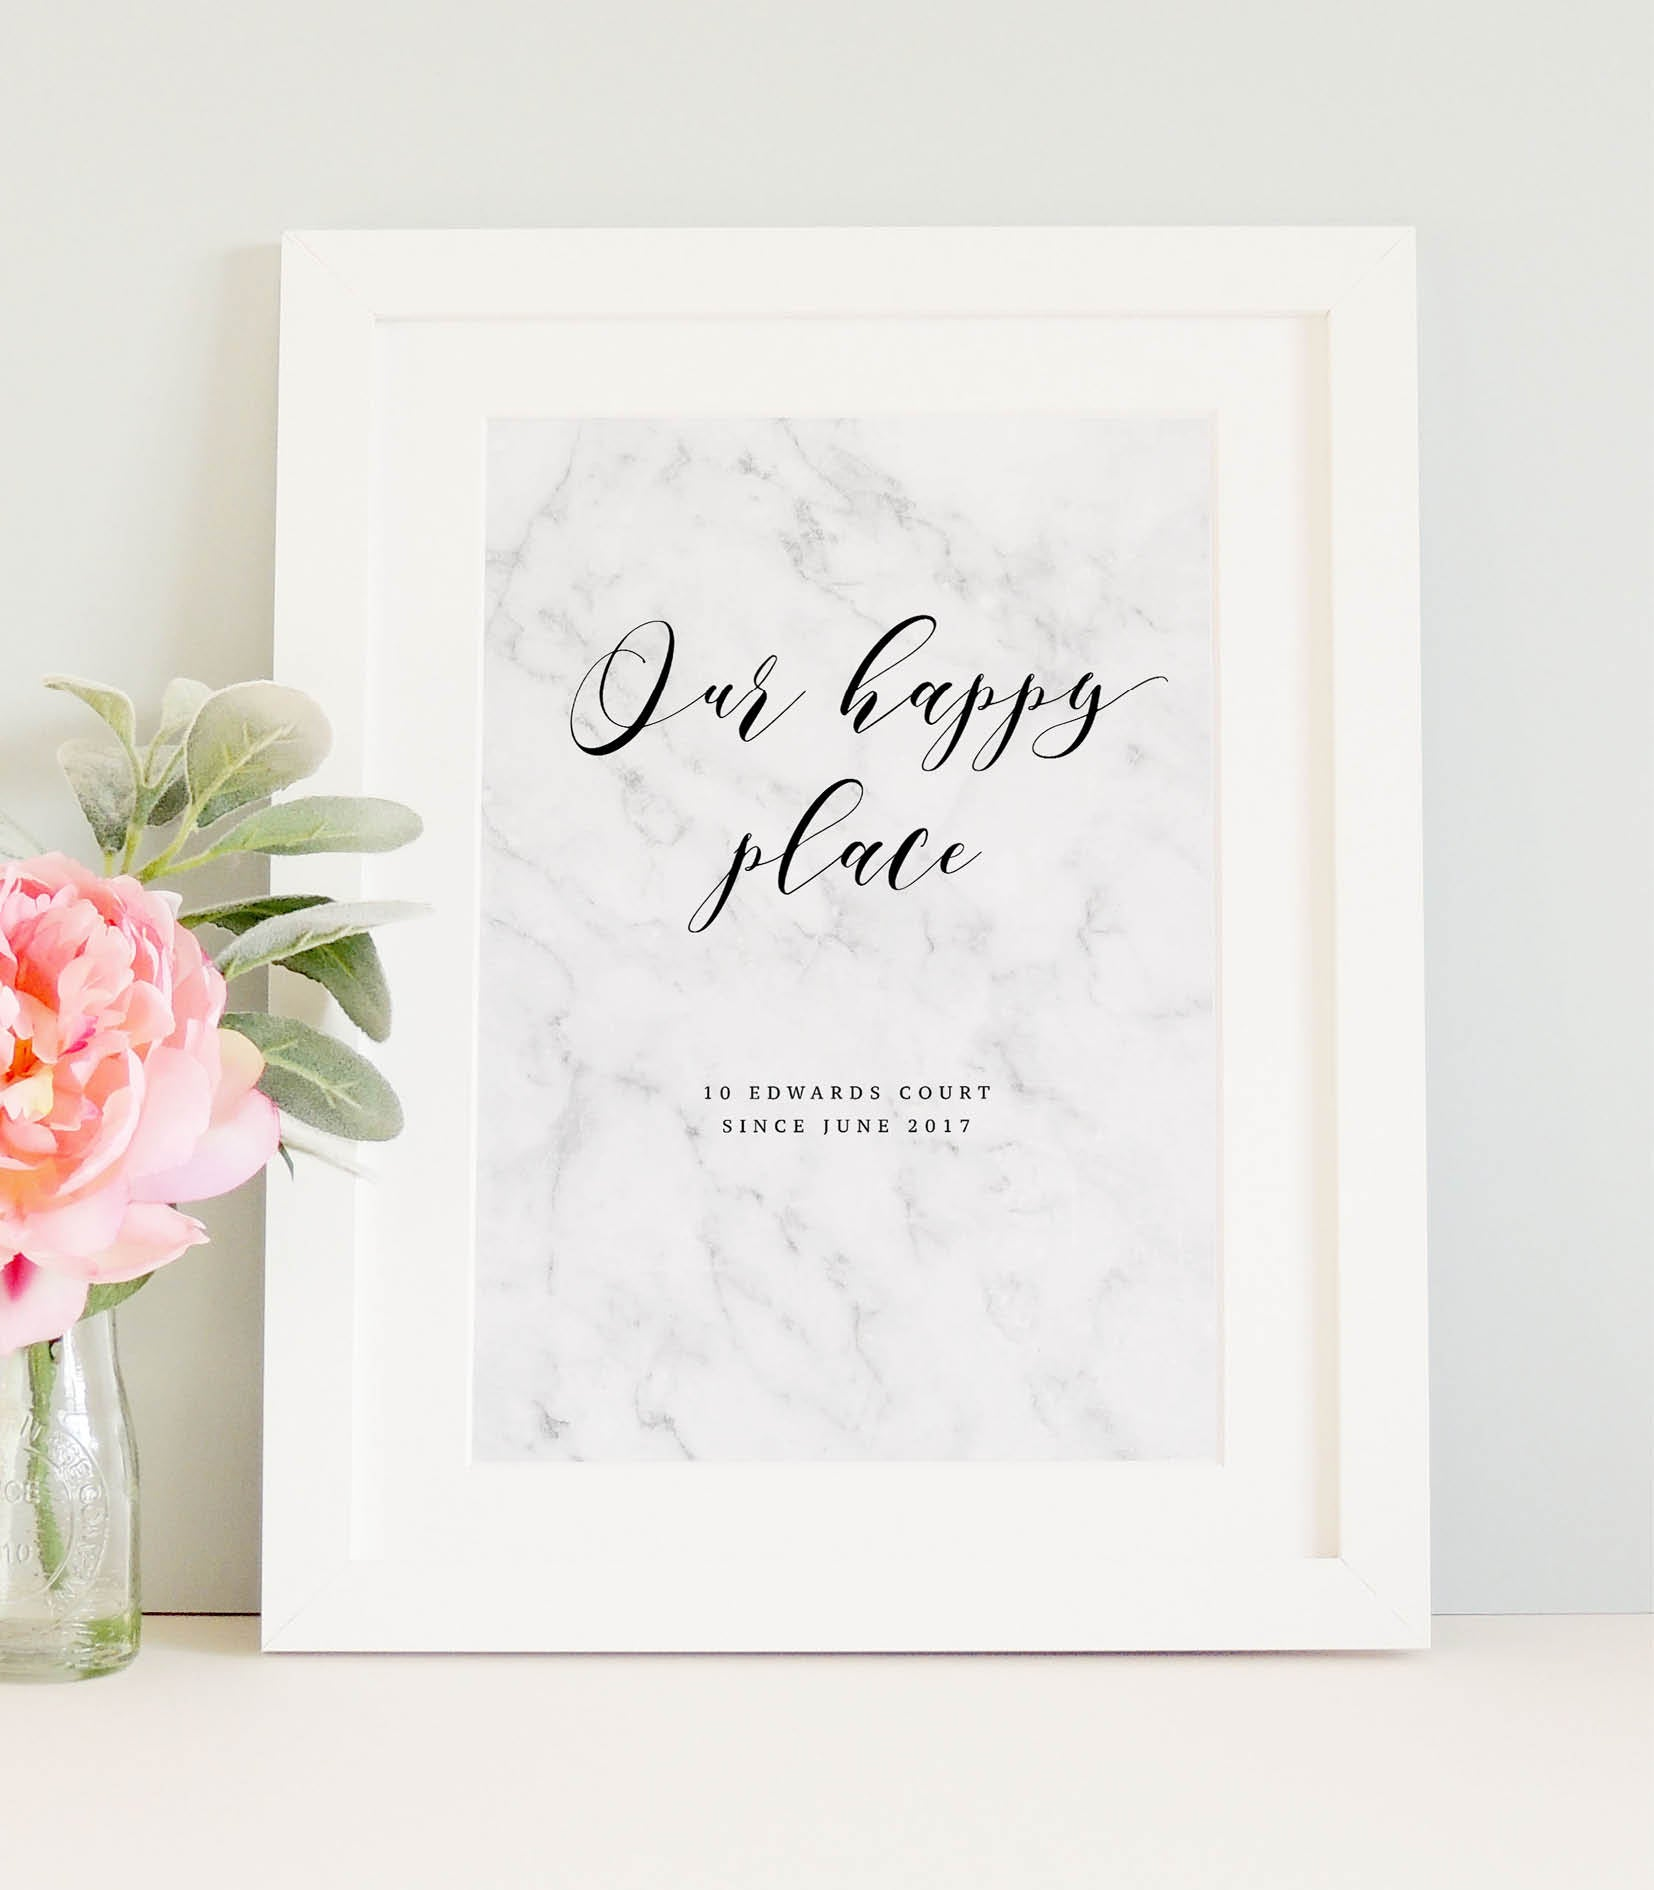 Personalised 'Our happy place' Print